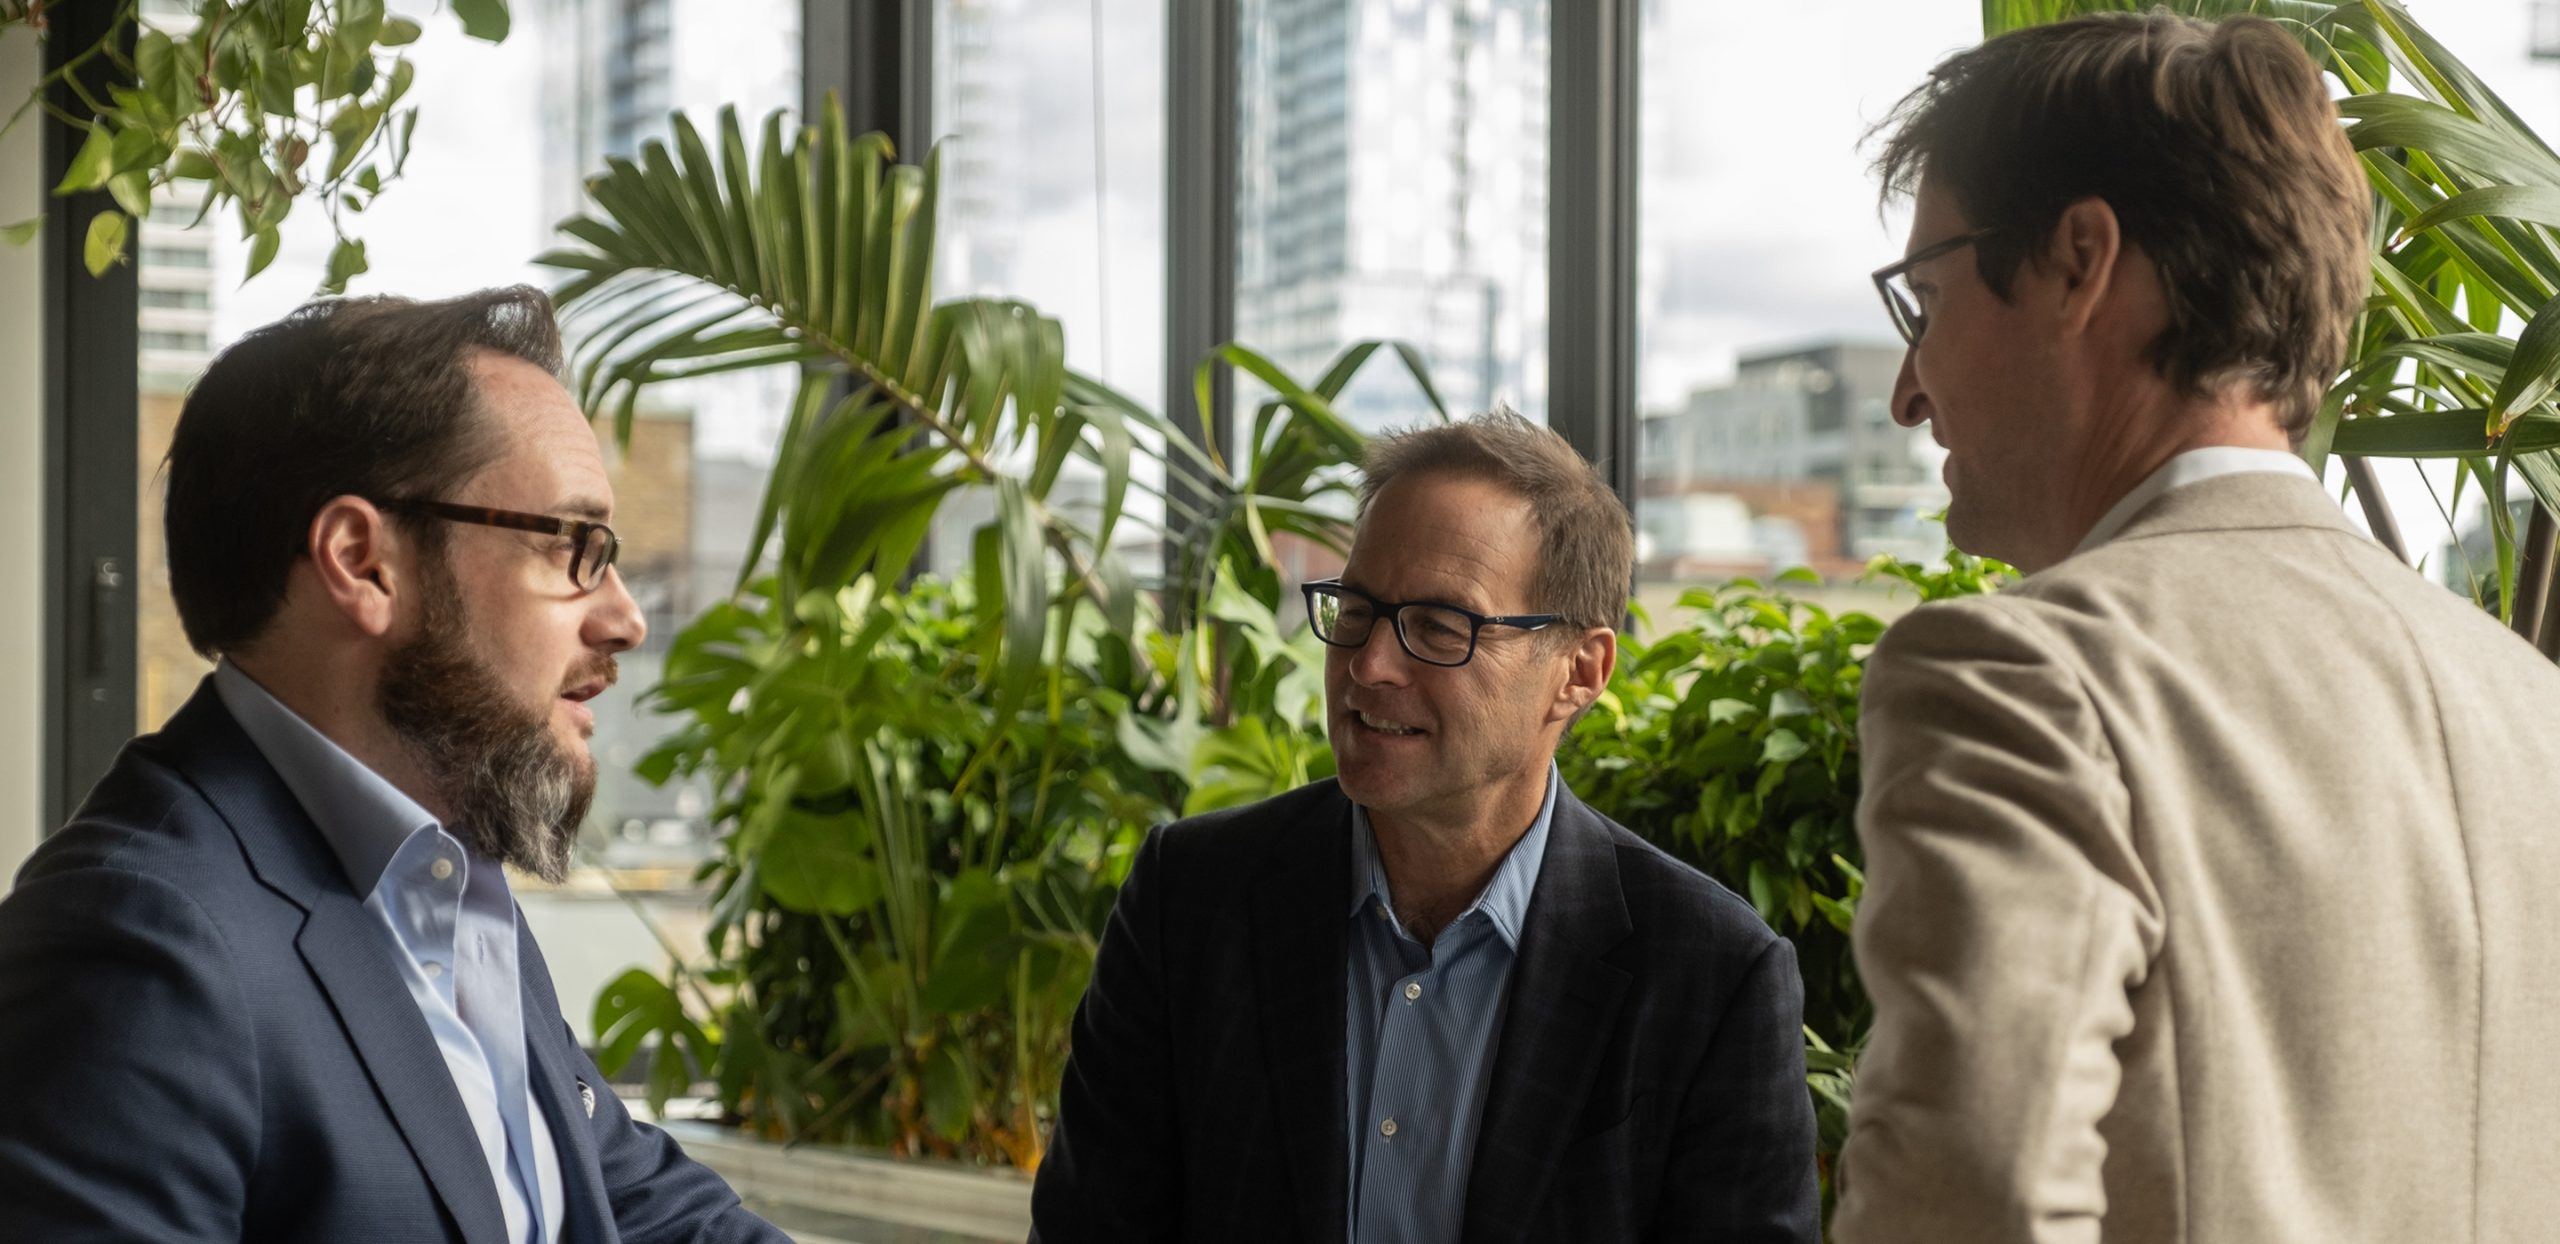 Michael Kaumeyer and Peter Mann, Co-Chief Executive Officers, Montreal, QC